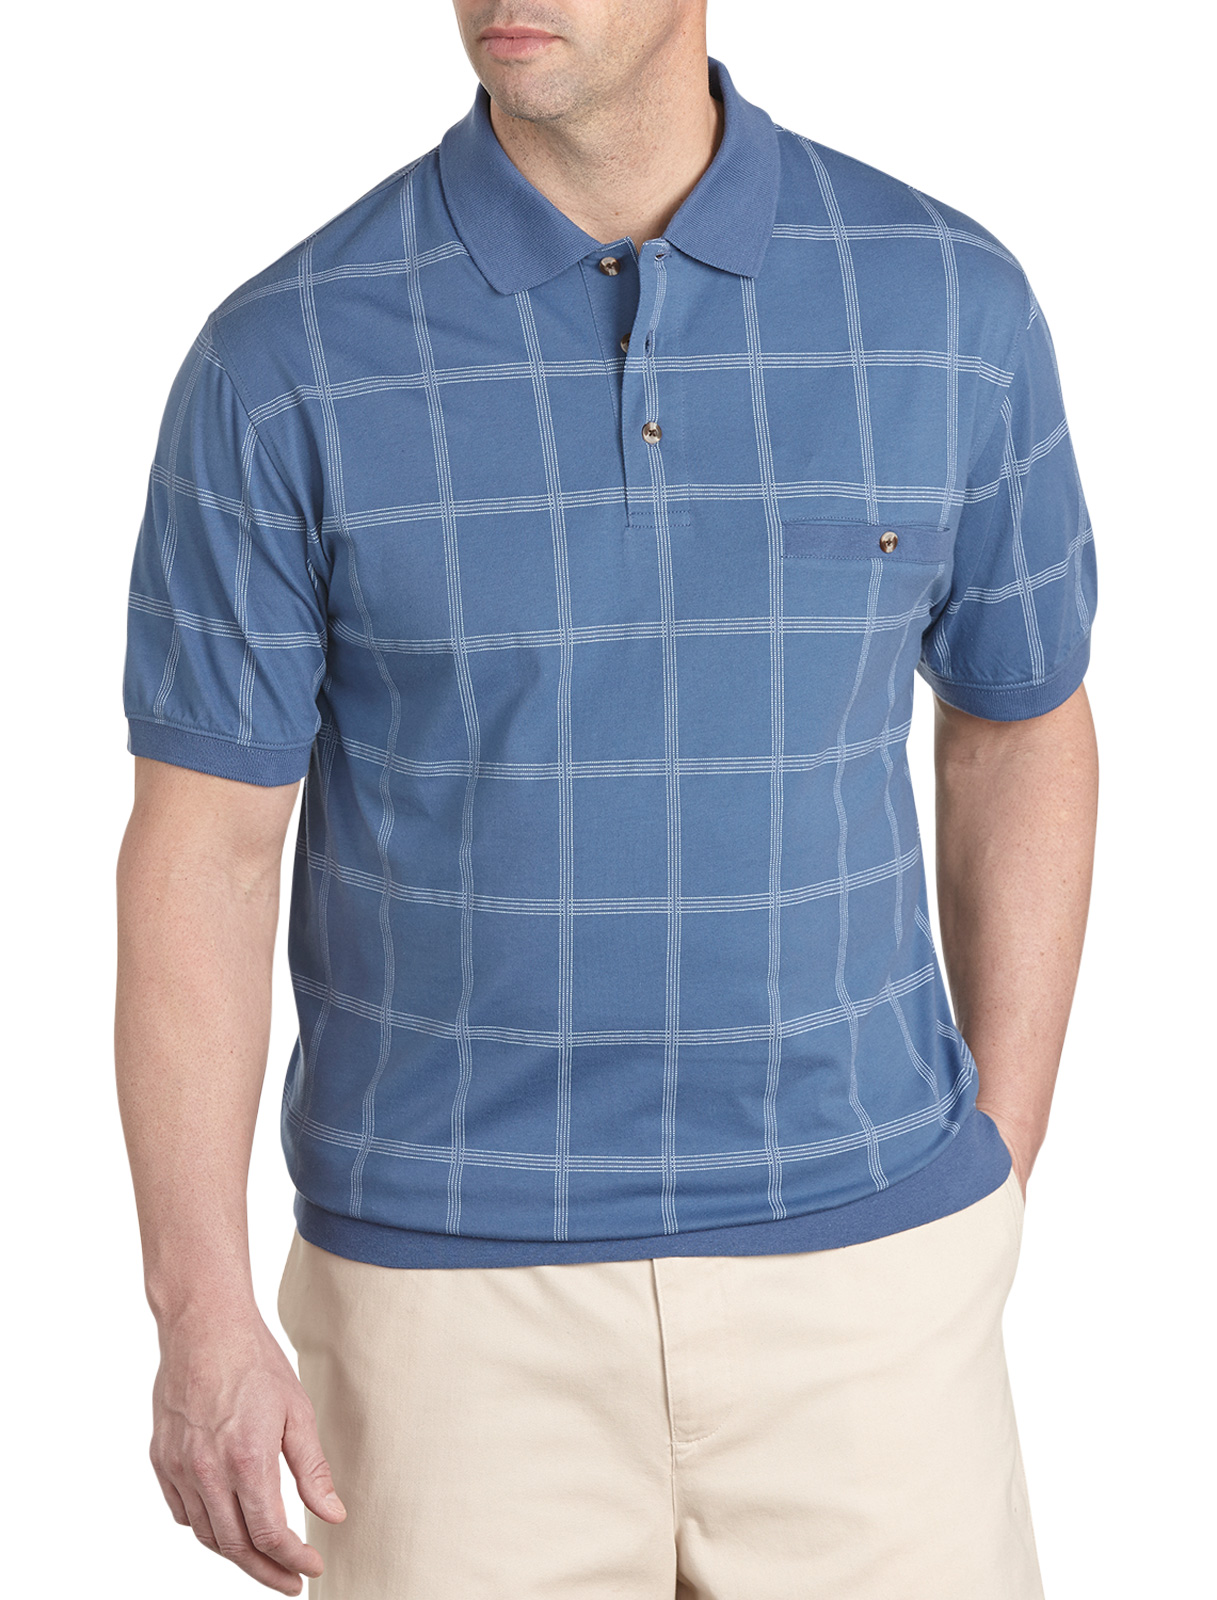 Harbor Bay Printed Square Banded-bottom Shirt